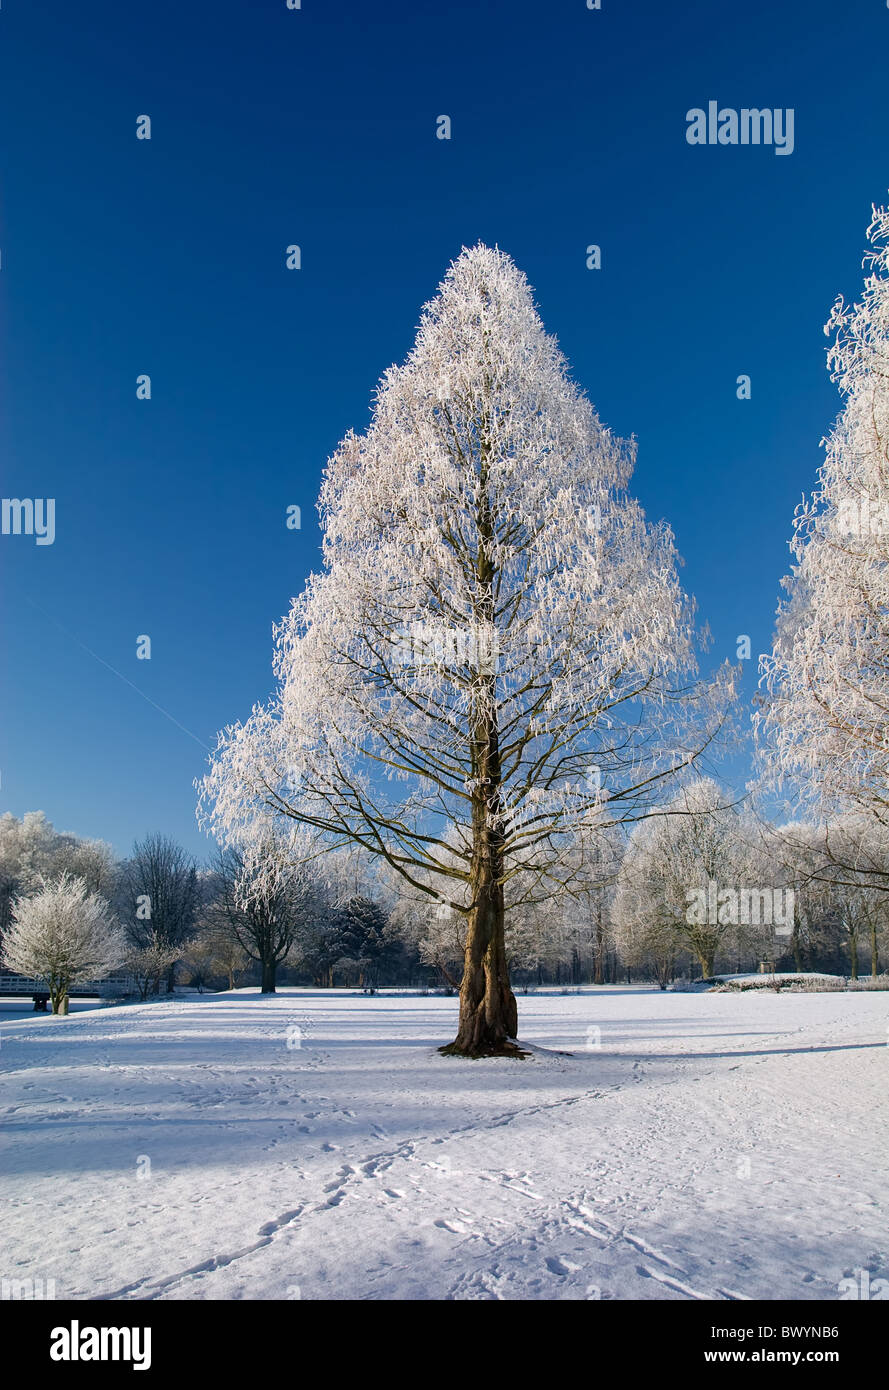 Winter park in snow with blue sky and white trees Stock Photo